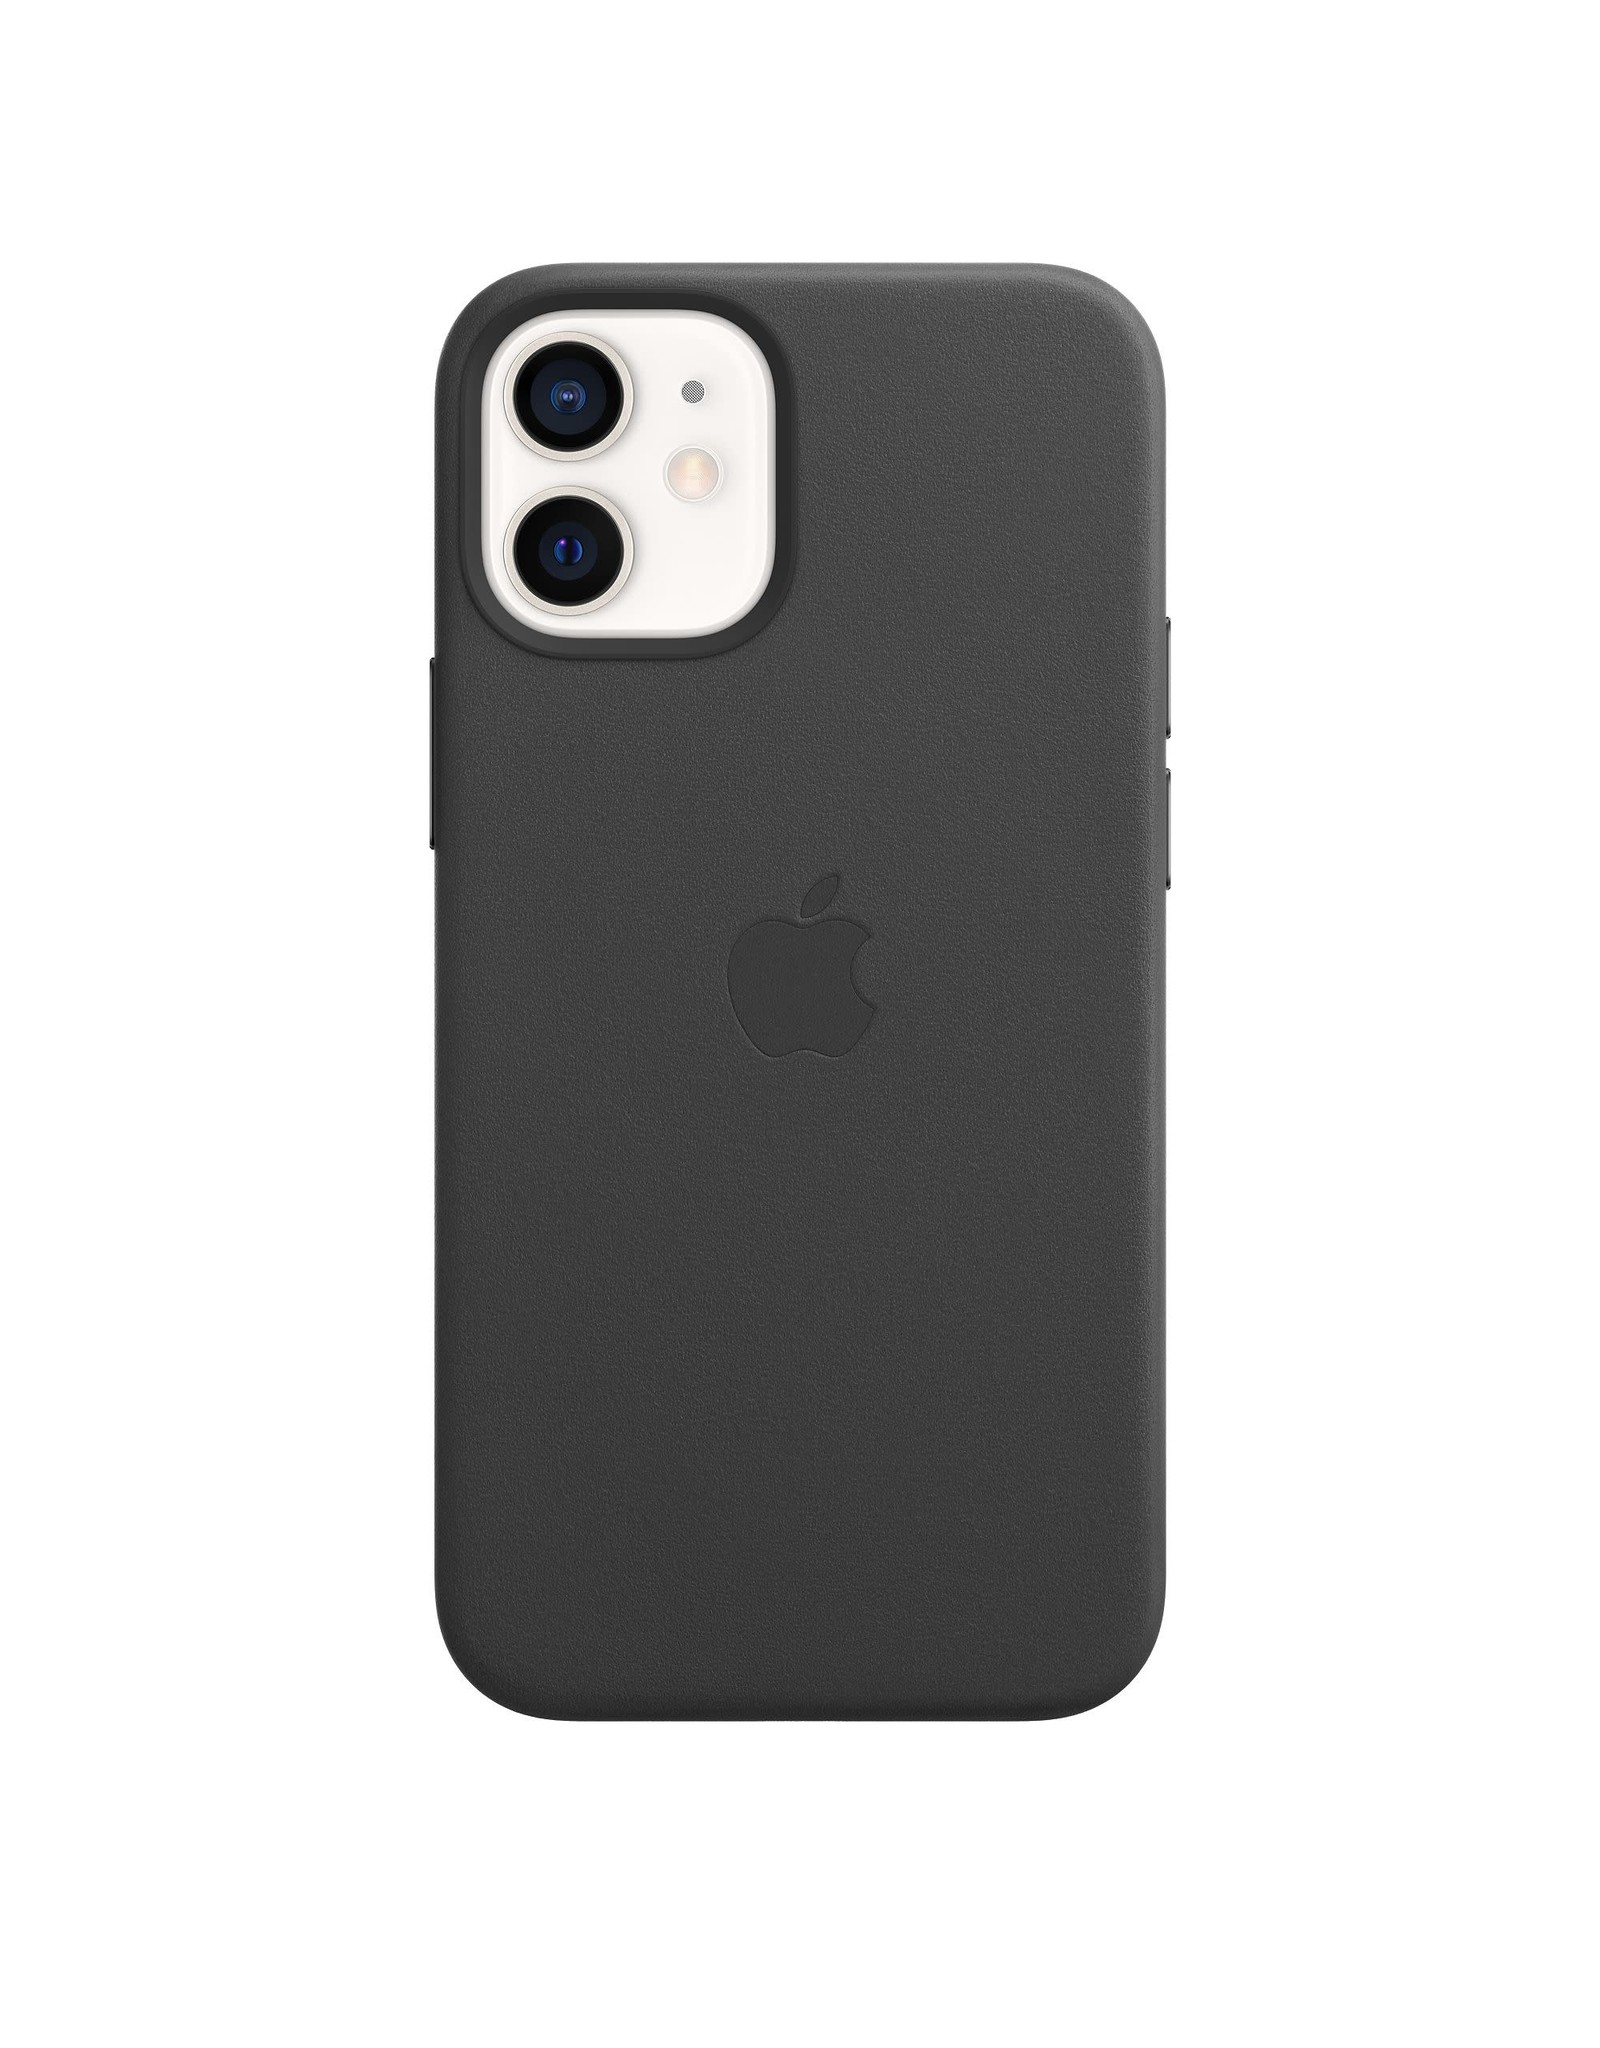 Apple Apple iPhone 12 mini Leather Case with MagSafe — Black